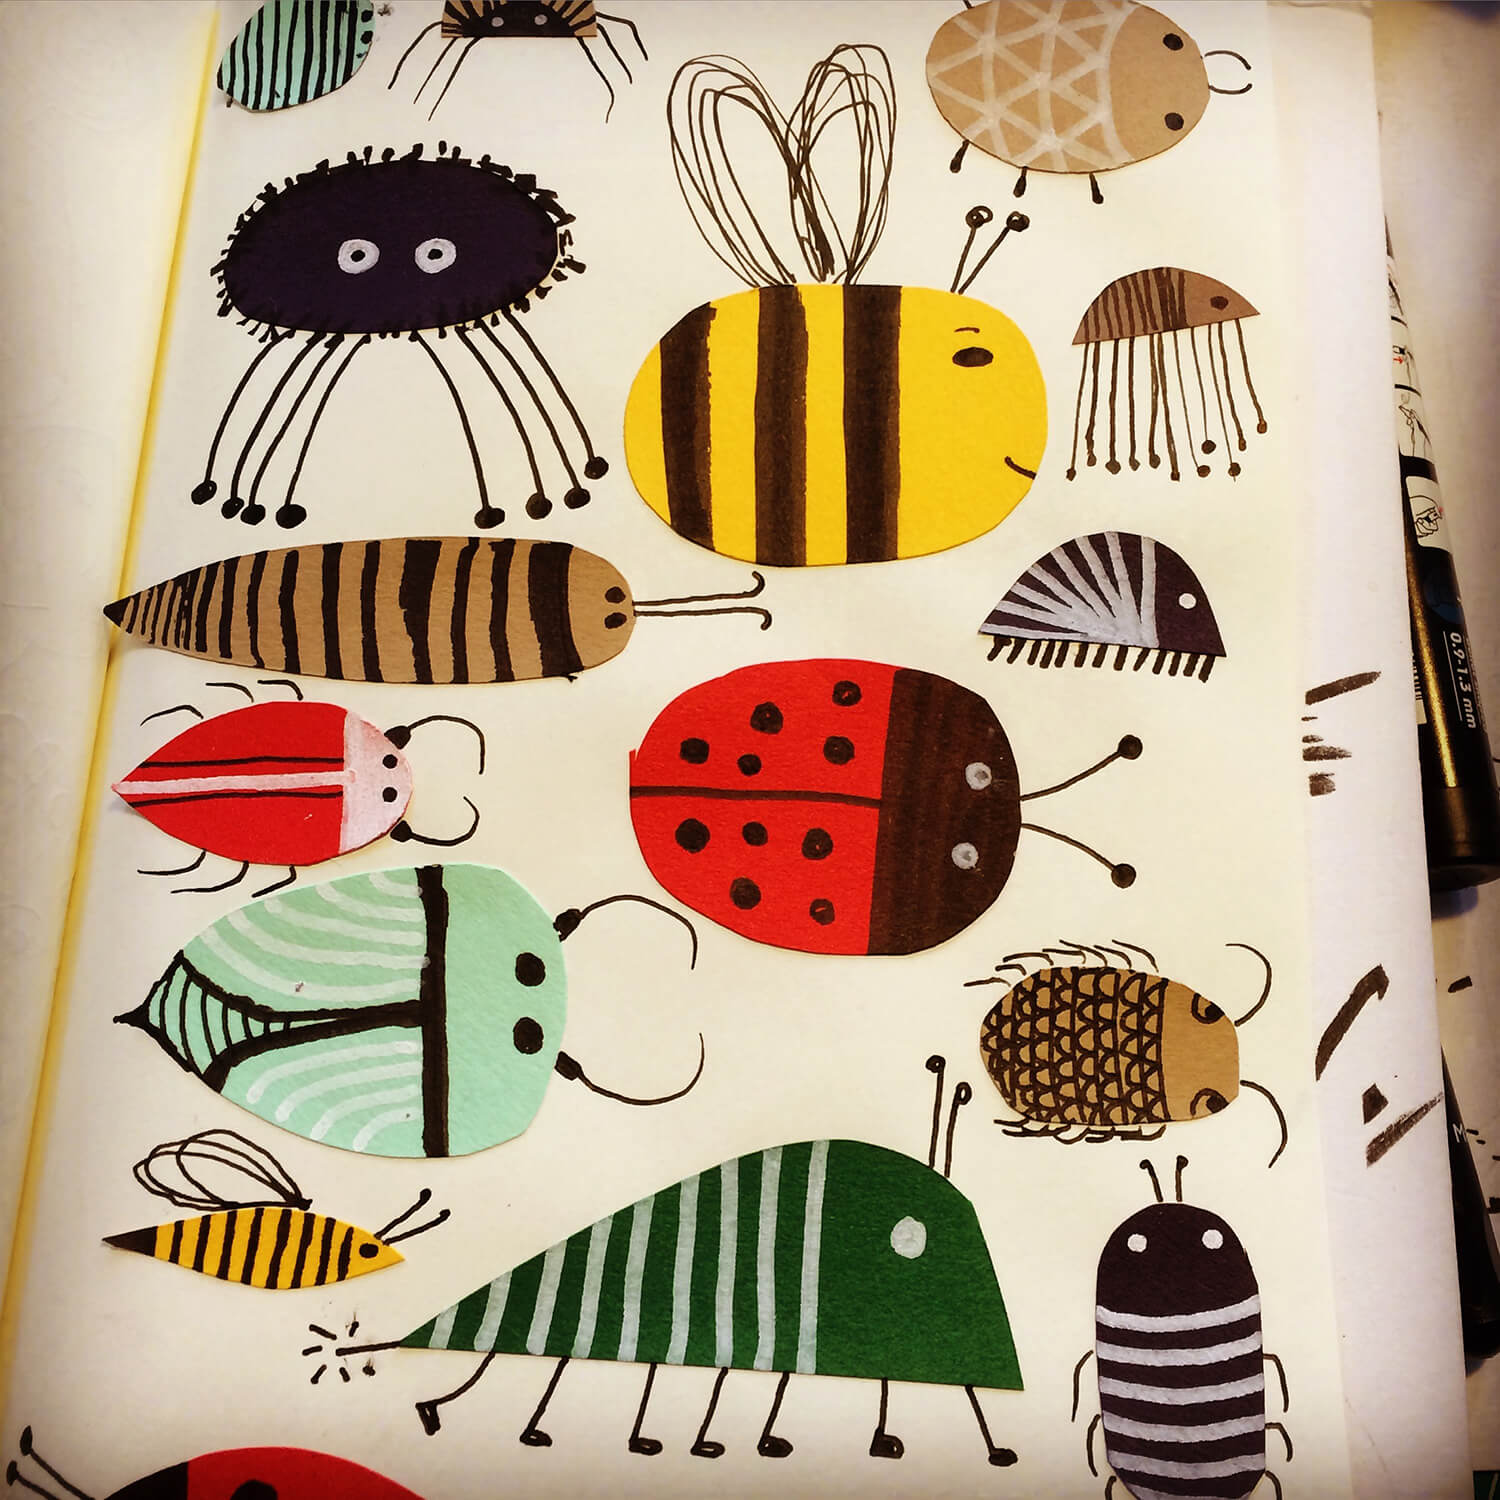 Sketchbook bugs. Cut paper shapes and pen.